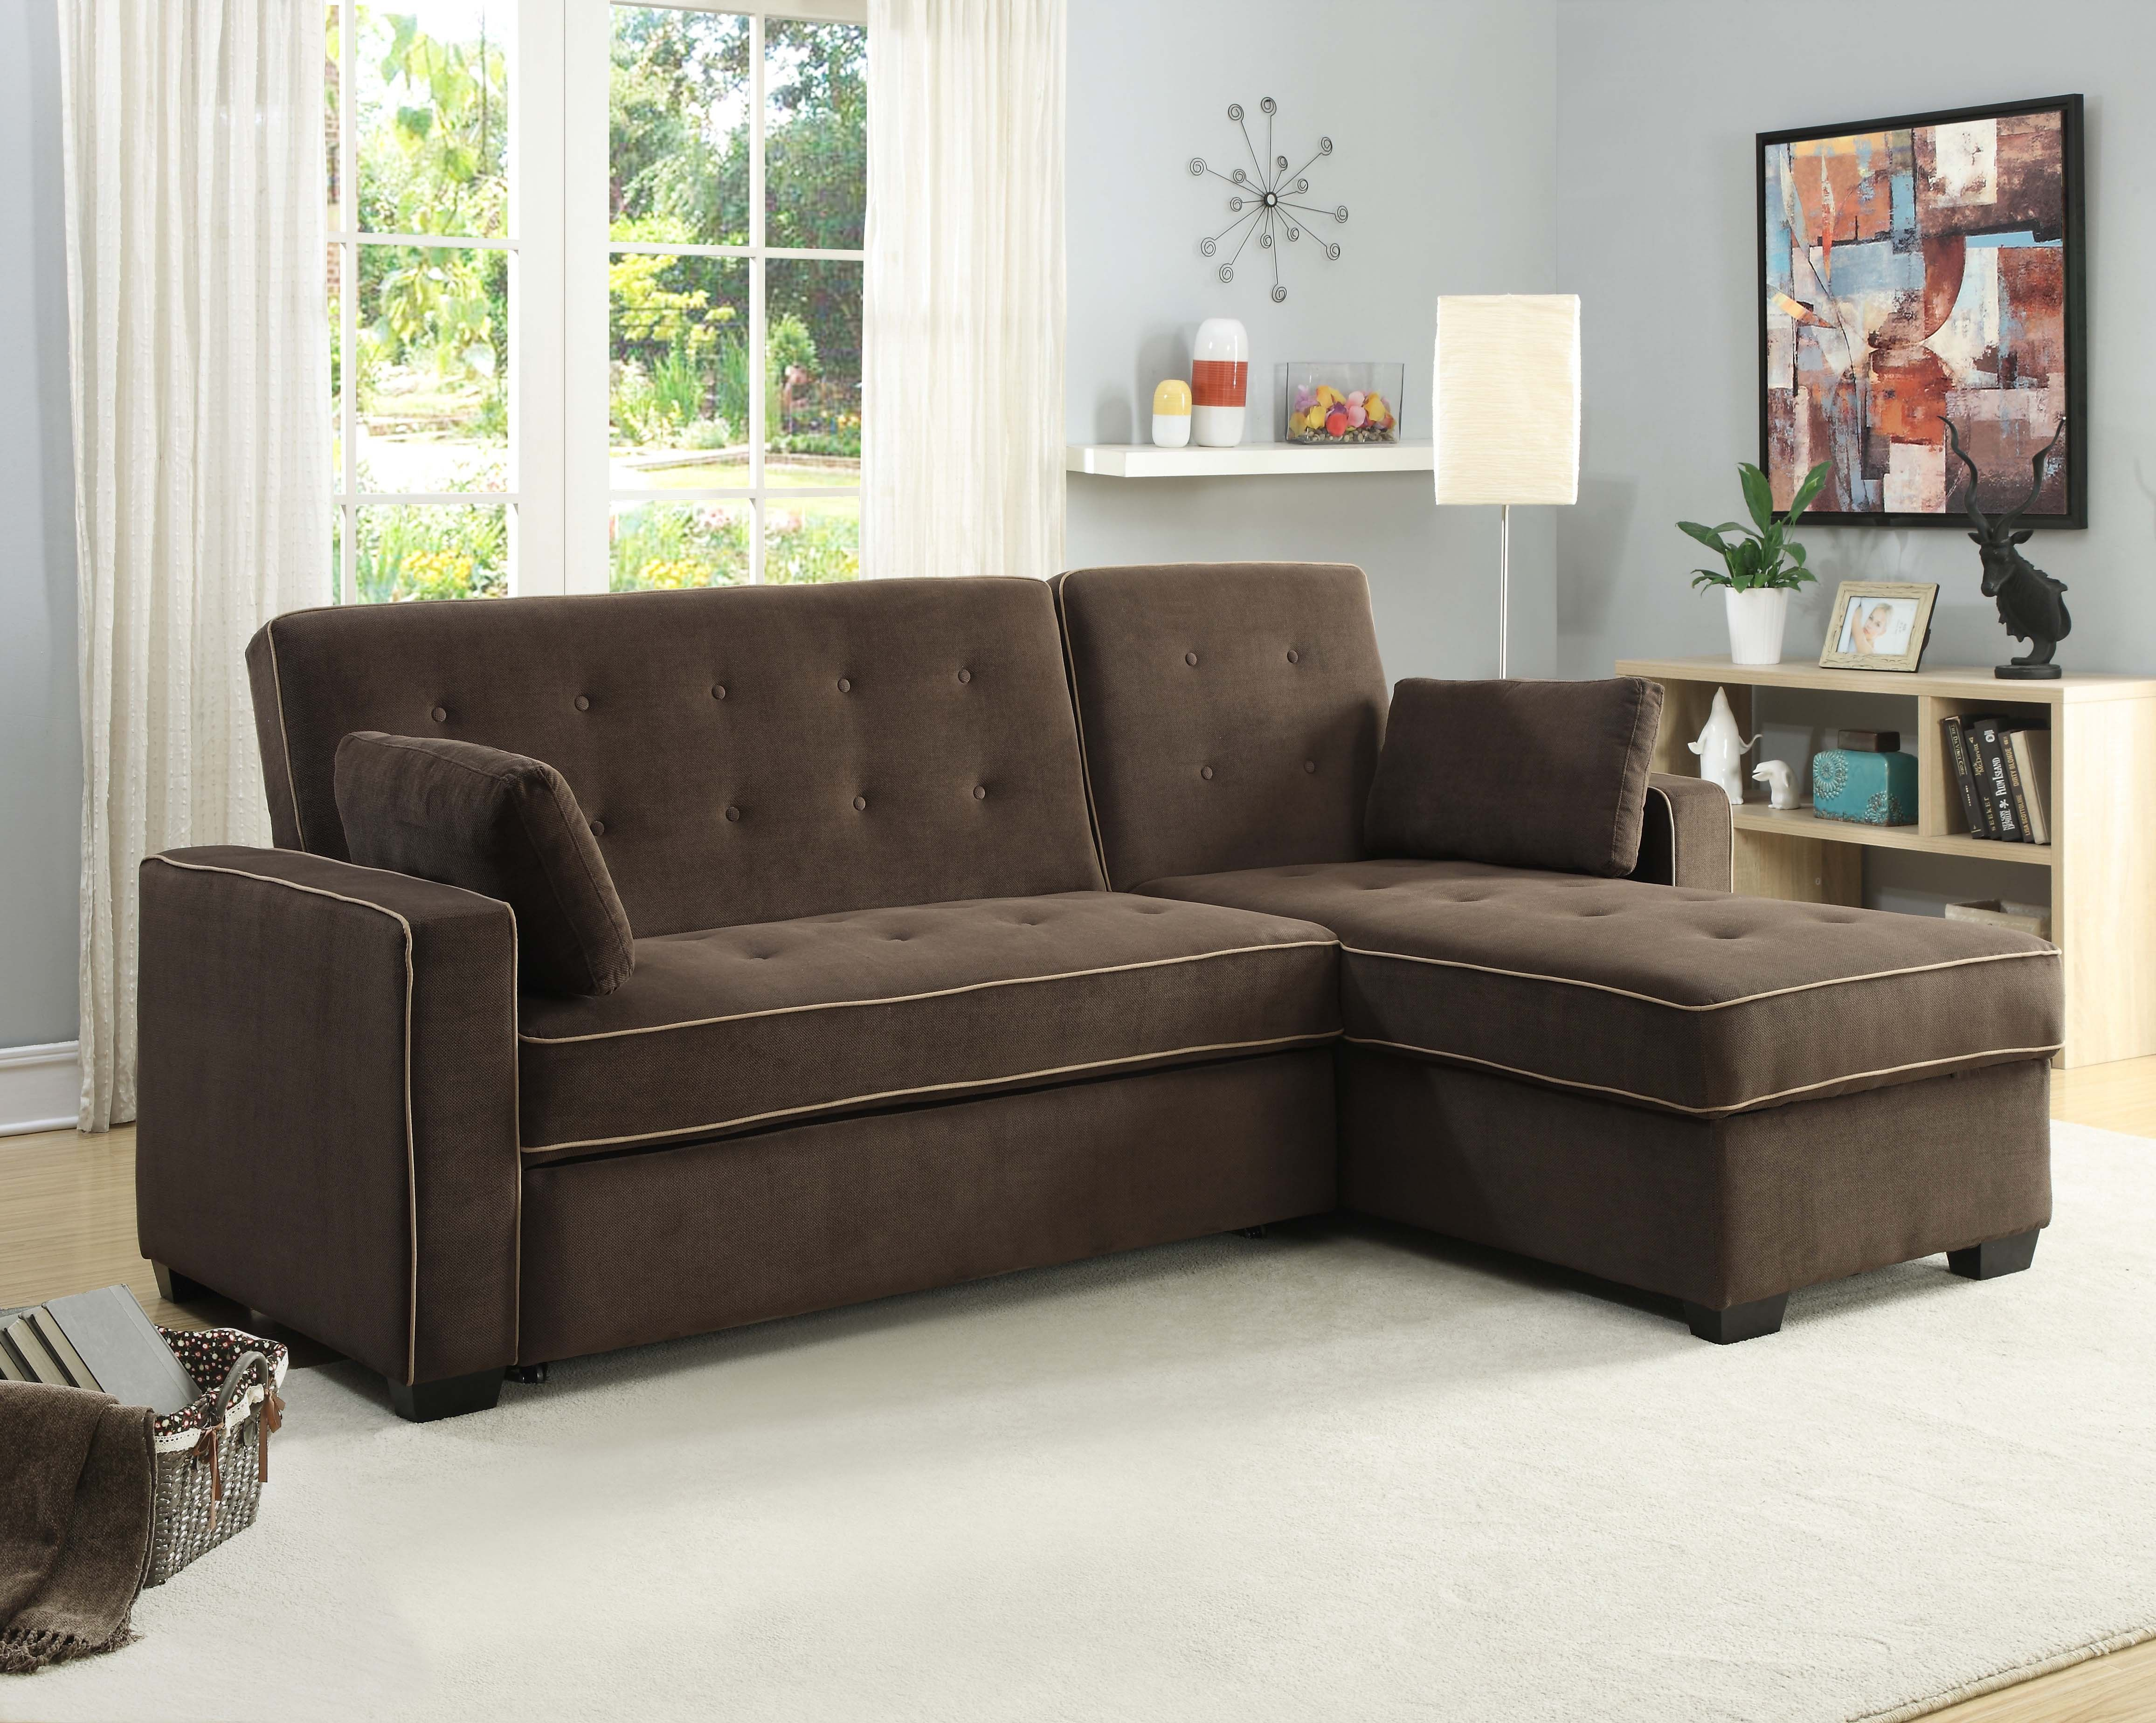 Sofa lounger pictures to pin on pinterest - 4 Seat Functions Sofa Lounger Bed And Chaise King Size Sleeper